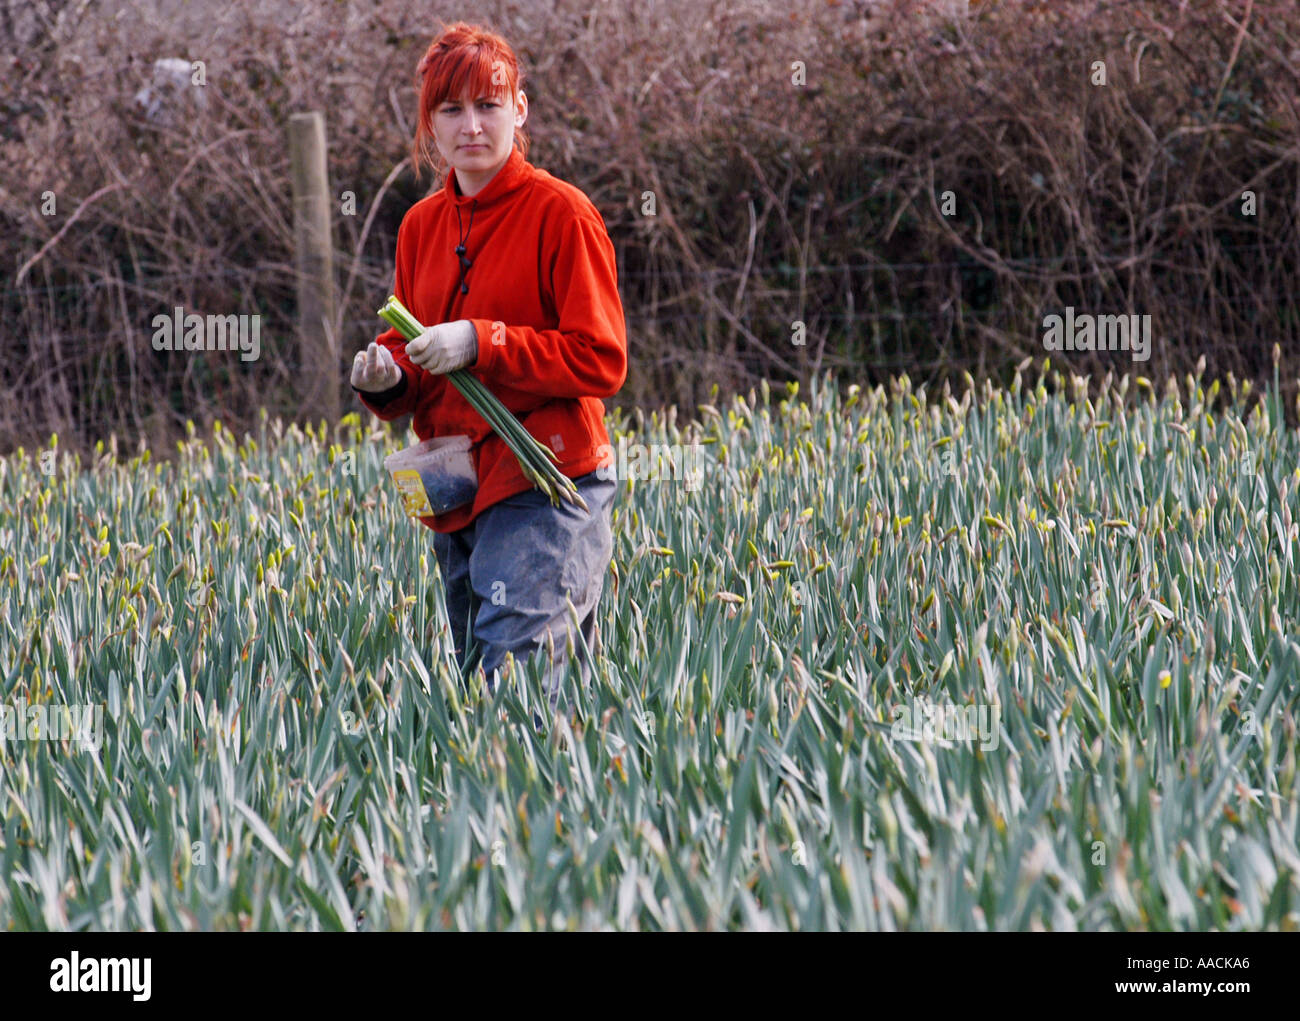 Migrant workers from Poland Latvia and Lithuania work on daffodil picking in the summer months in Cornwall, UK. - Stock Image